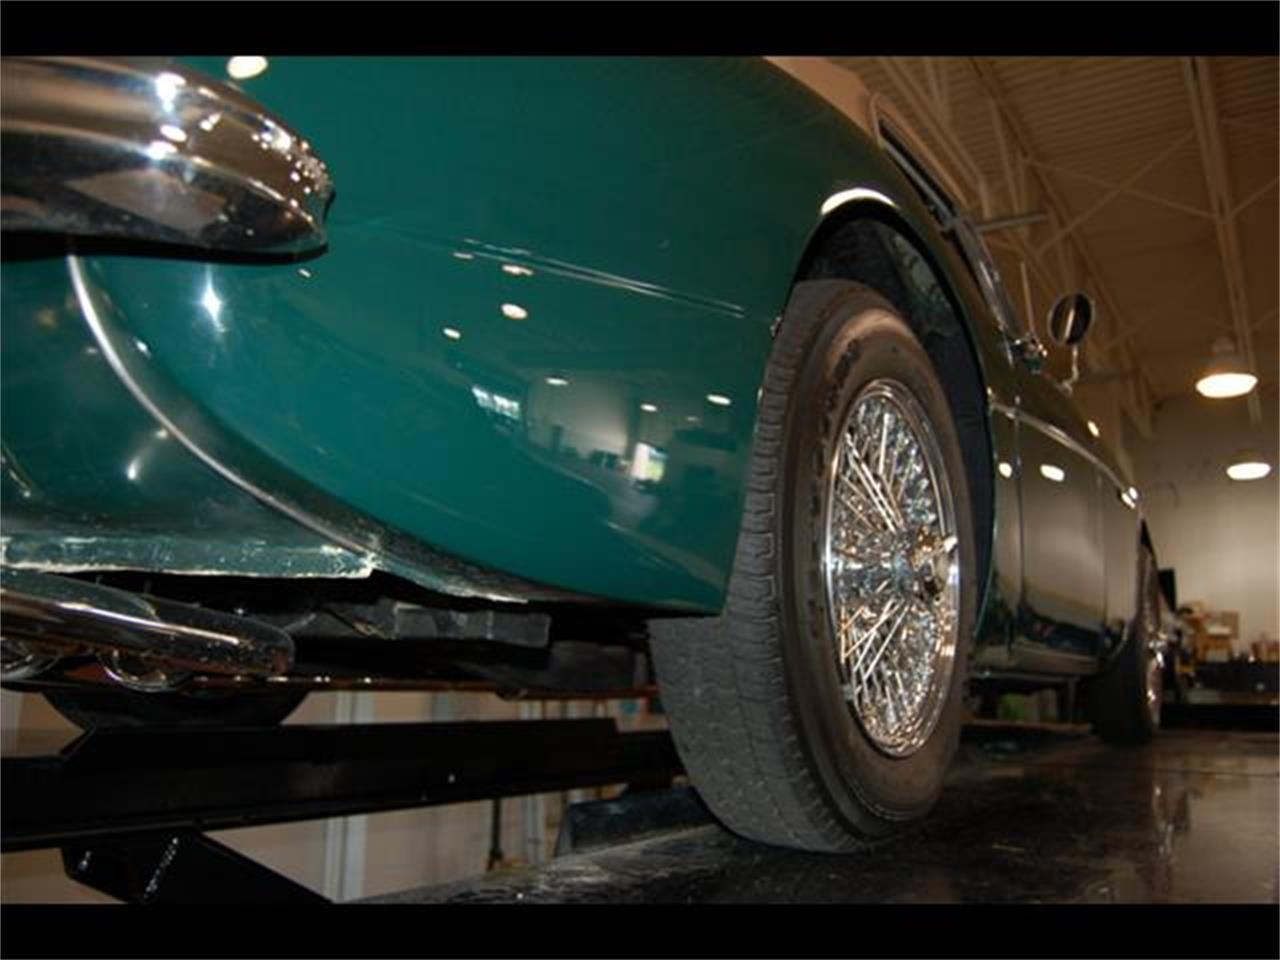 Large Picture of 1967 Austin-Healey 3000 Mark III located in Marysville Ohio - $59,999.00 Offered by Nelson Automotive, Ltd. - LRXT